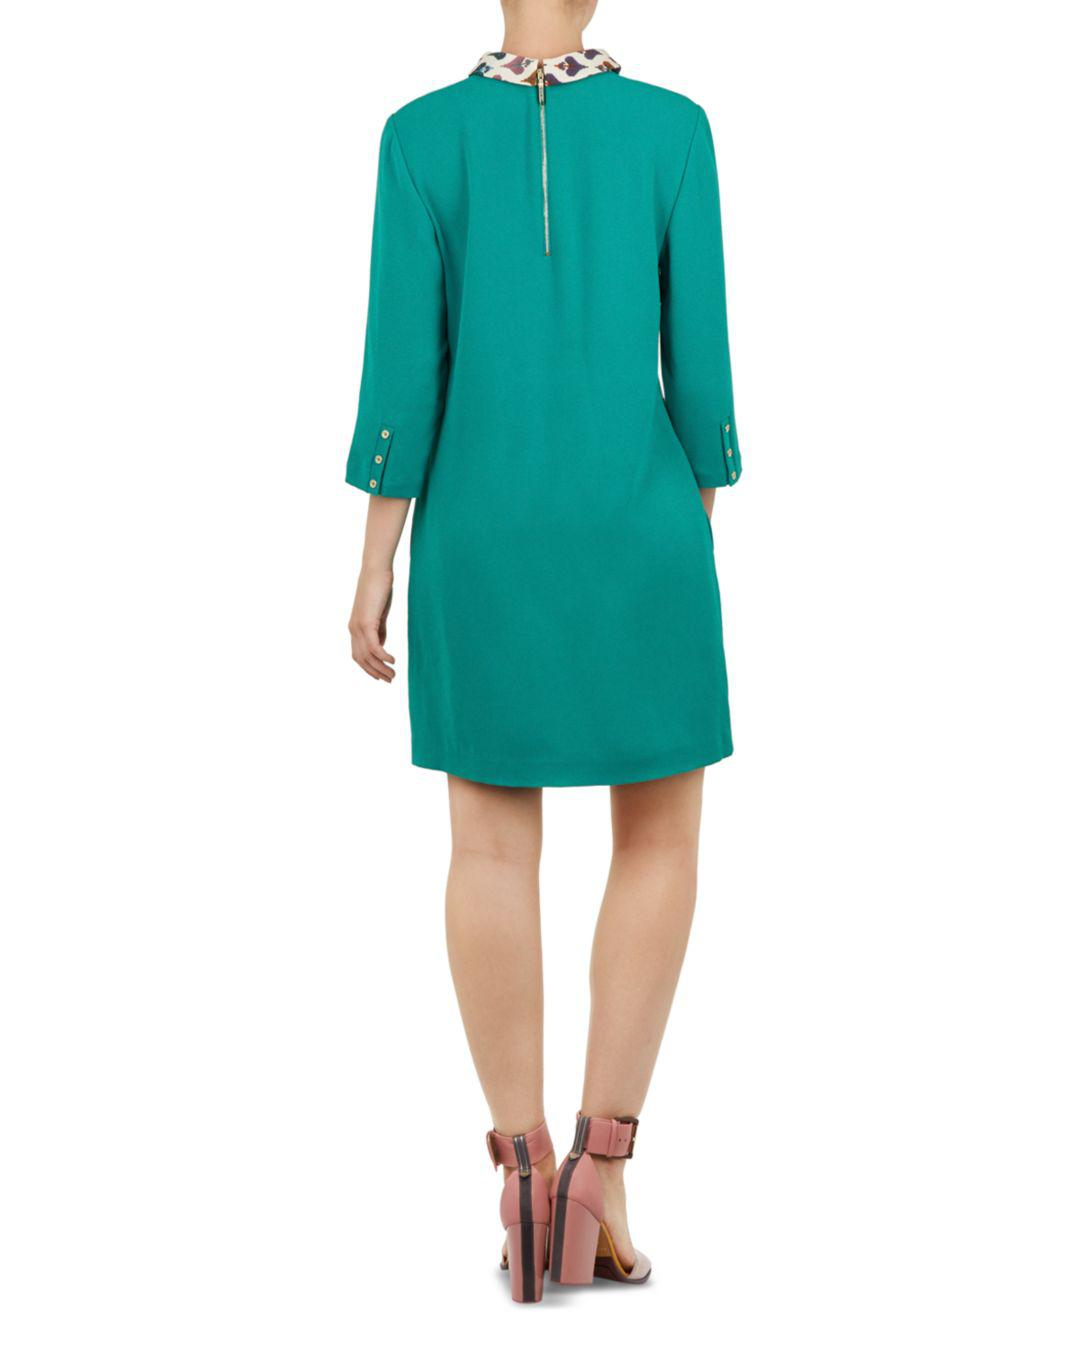 Lyst - Ted Baker Colour By Numbers Spineli Shift Dress in Green